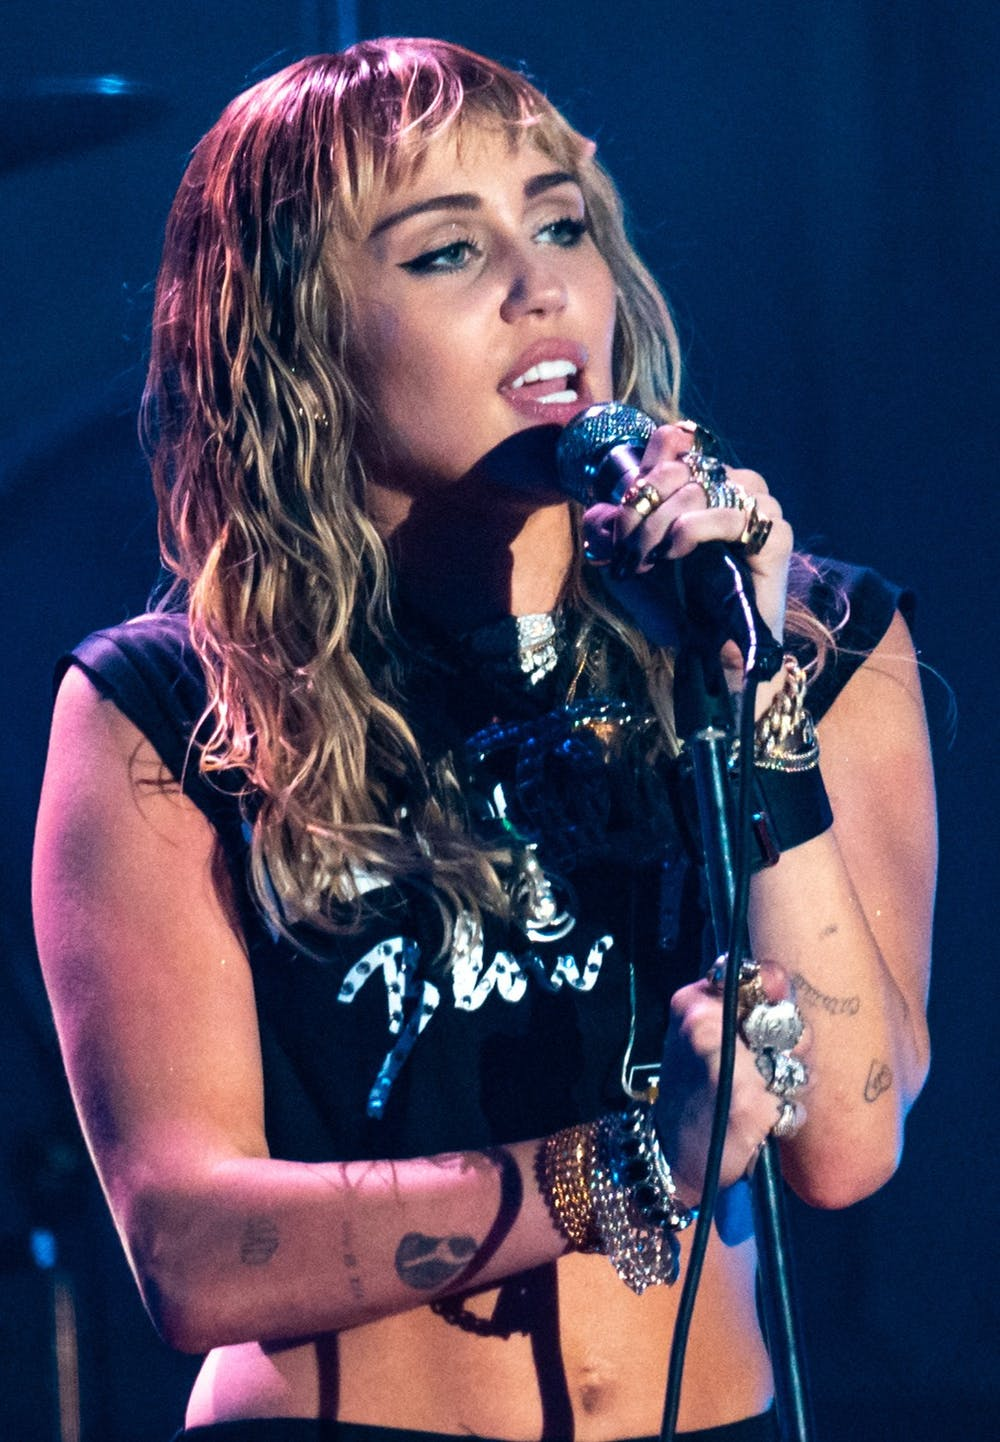 <p>After beginning her career on Disney Channel, Miley Cyrus has expanded into a variety of music genres.</p>